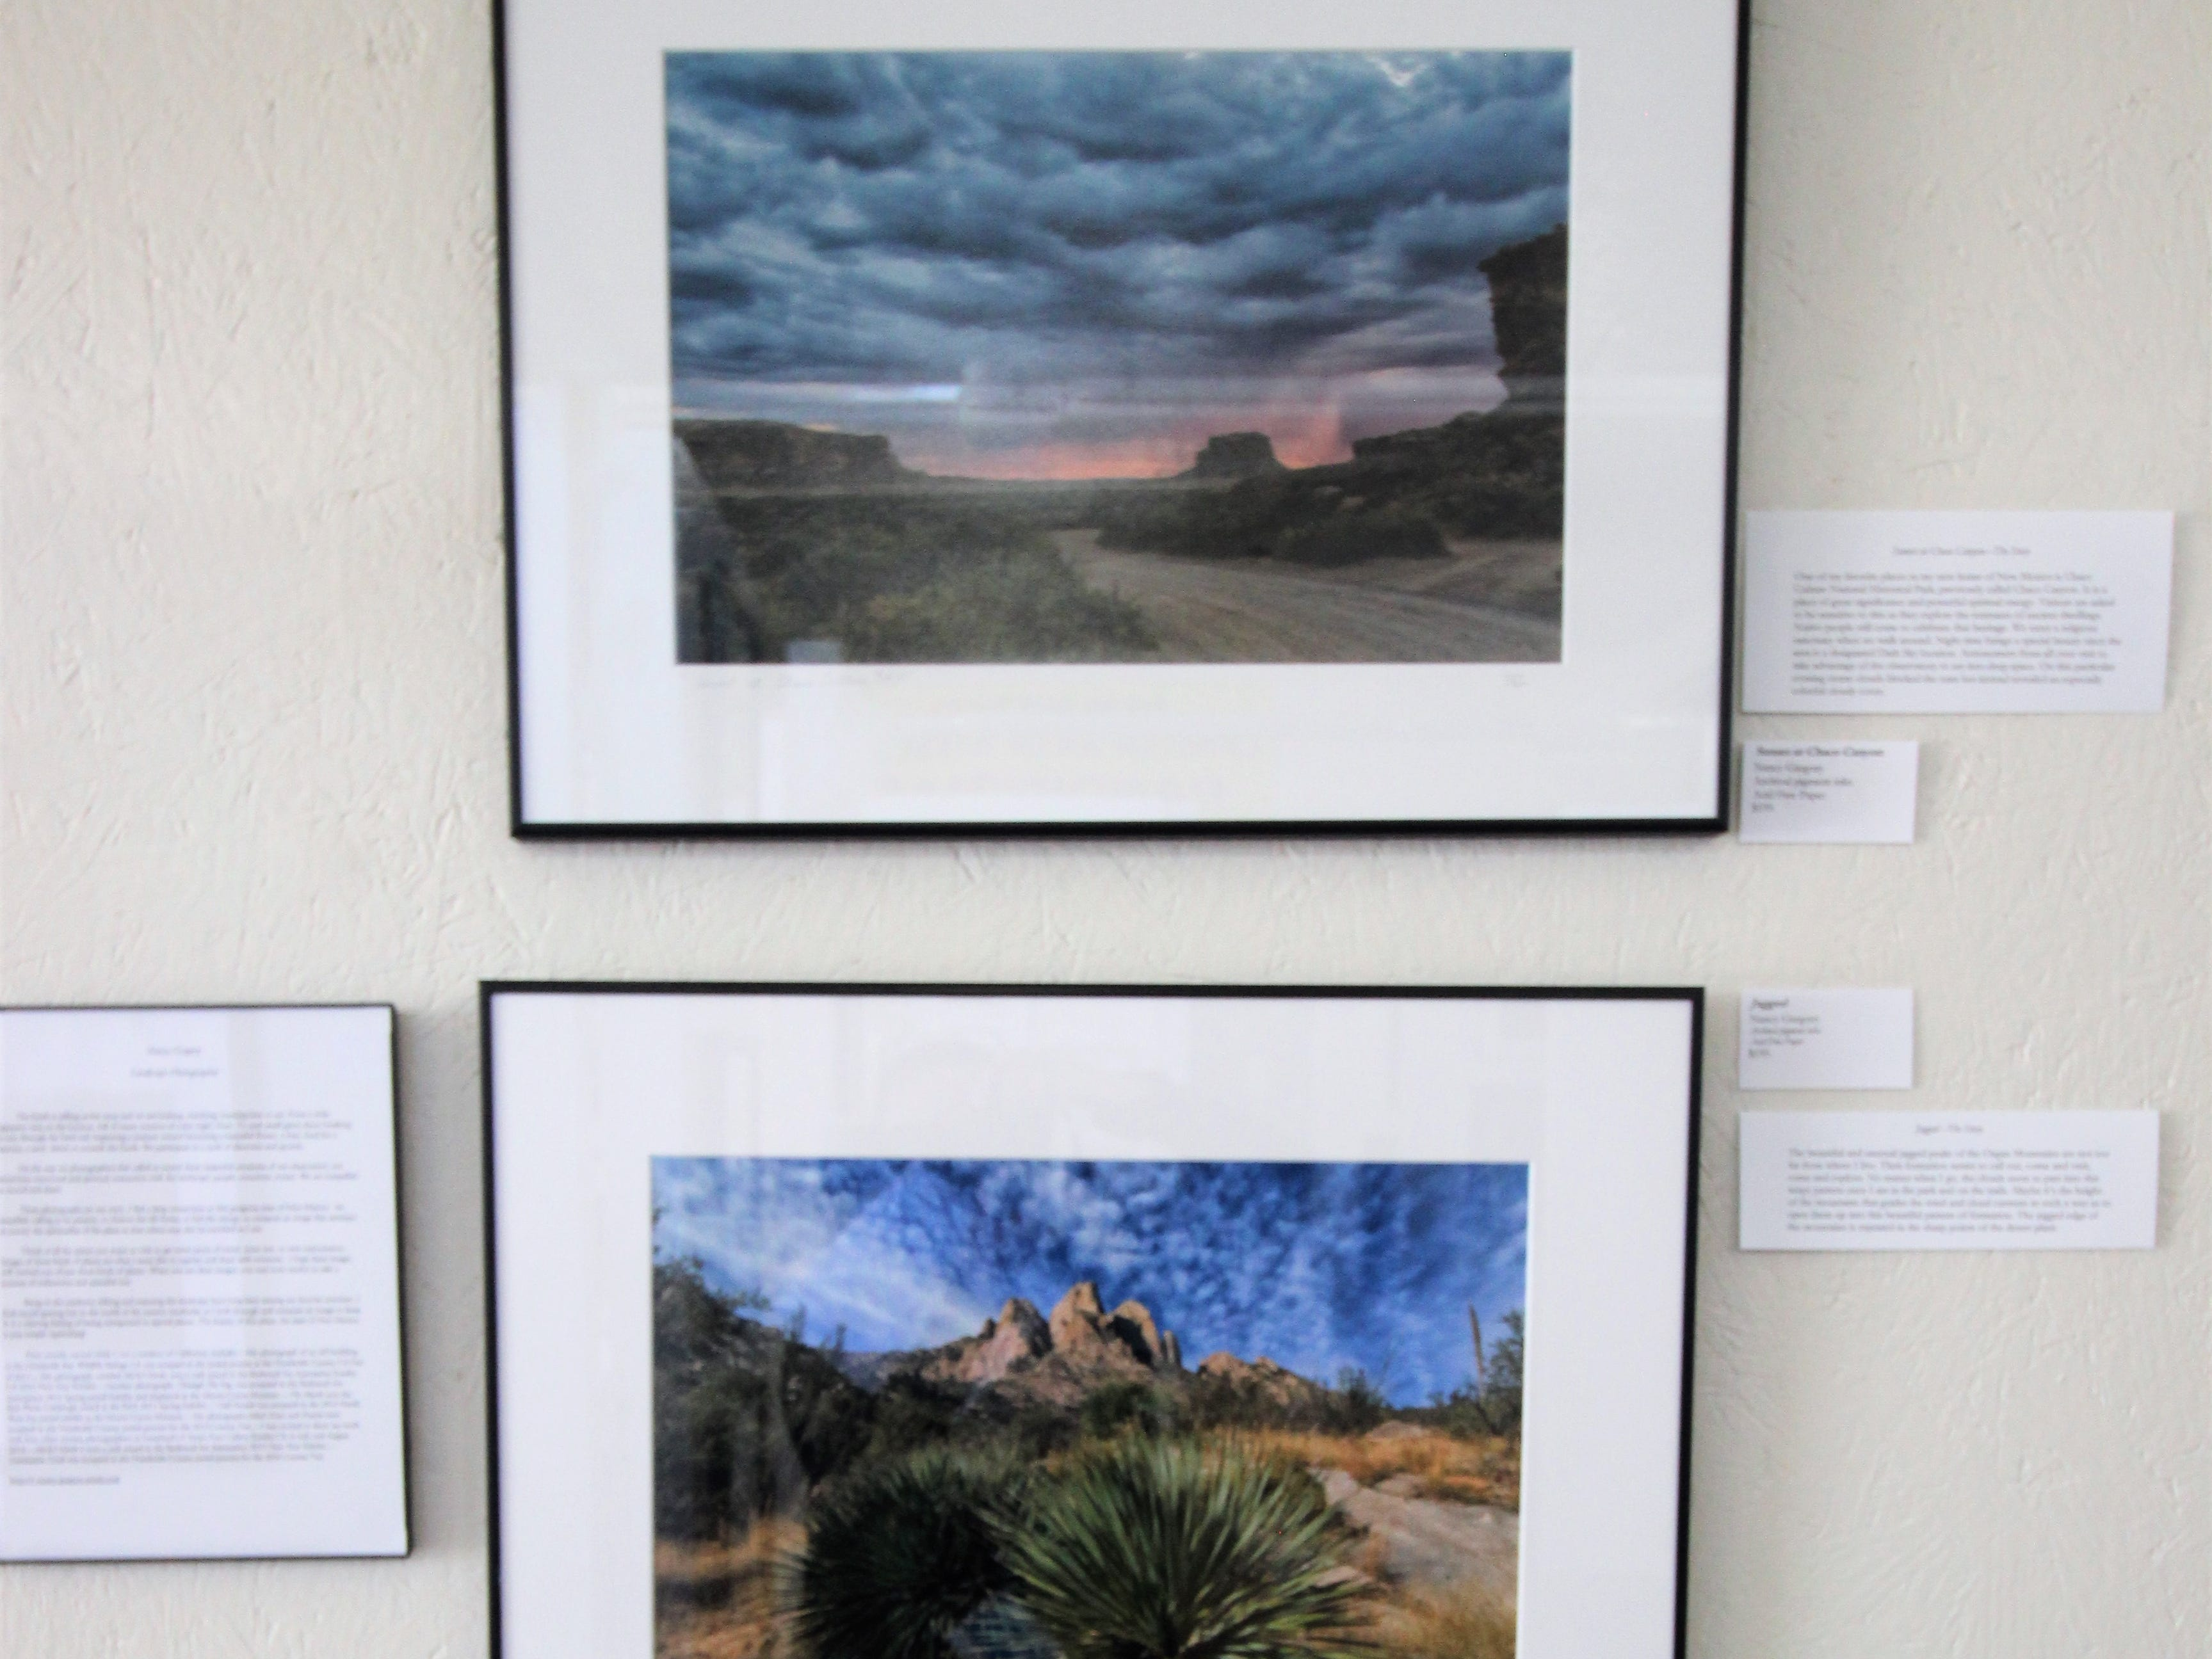 Nancy Gregory's photographs of White Sands National Monument is on exhibit at the Tularosa Basin Gallery of photography.